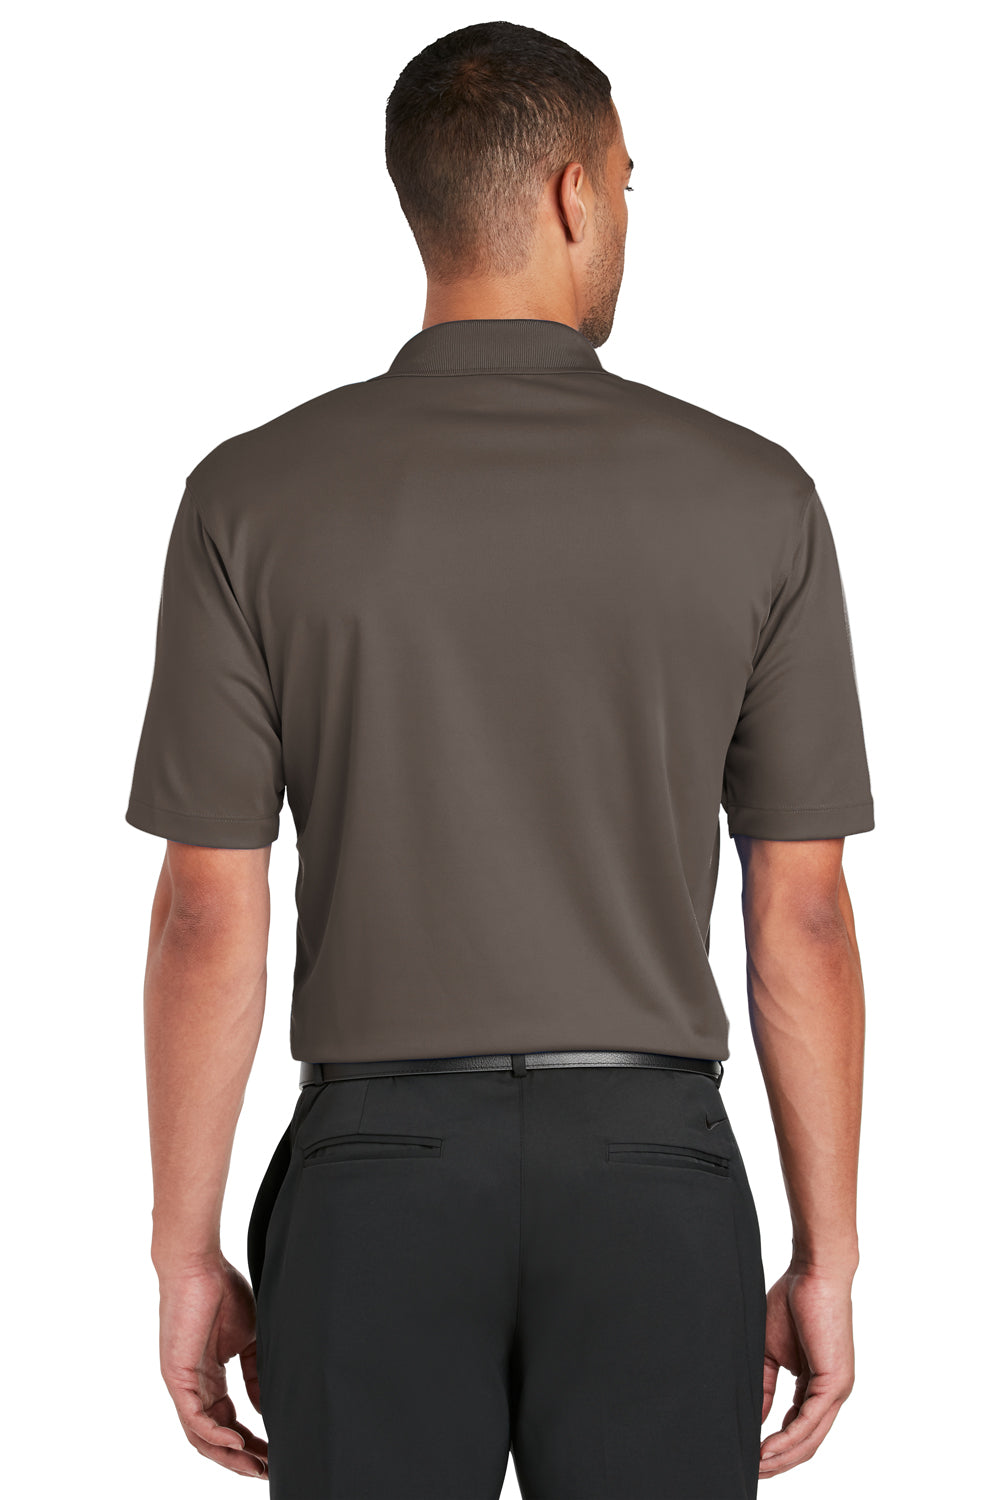 Nike 363807 Mens Dri-Fit Moisture Wicking Short Sleeve Polo Shirt Brown Back